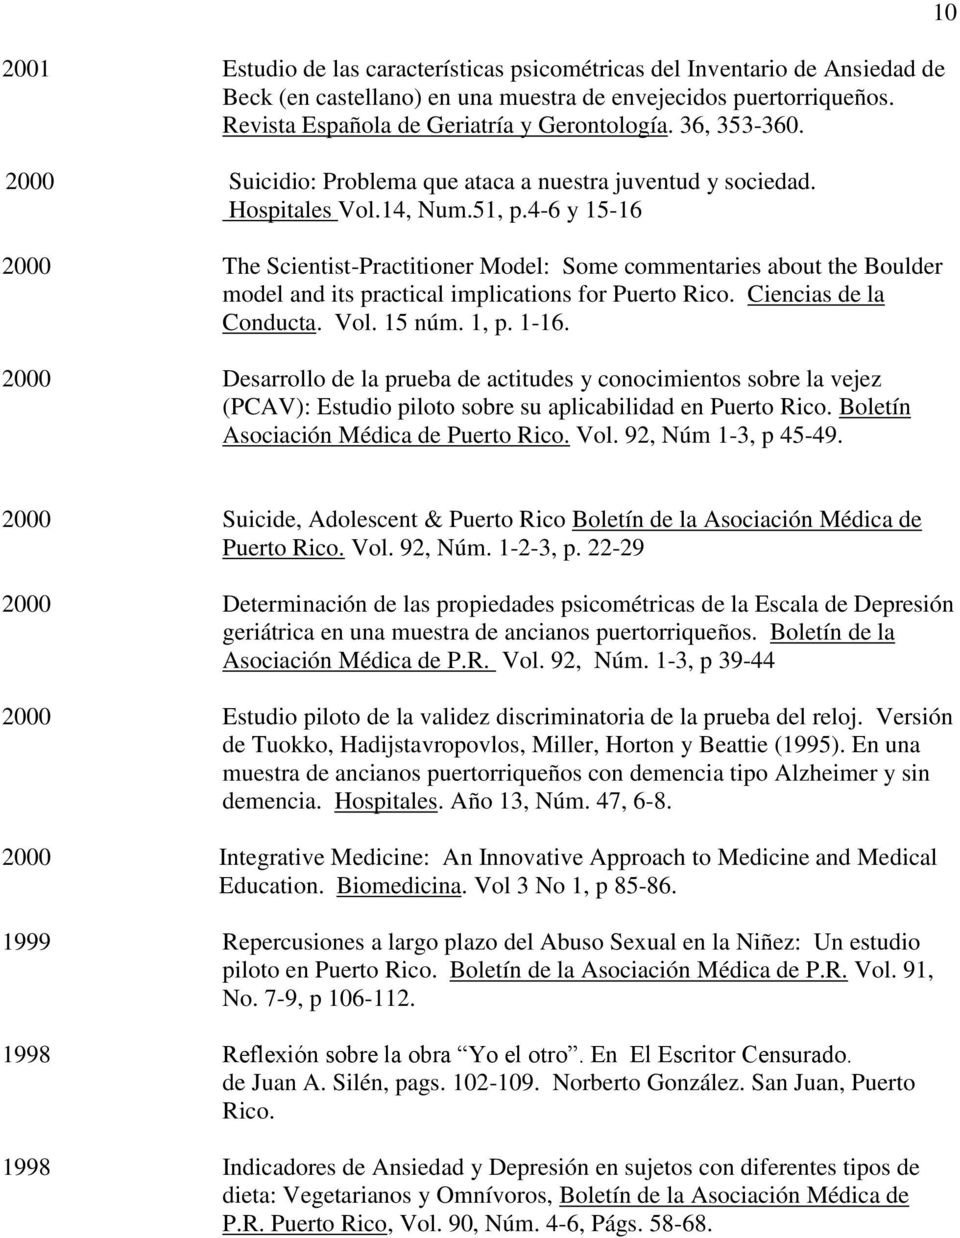 4-6 y 15-16 2000 The Scientist-Practitioner Model: Some commentaries about the Boulder model and its practical implications for Puerto Rico. Ciencias de la Conducta. Vol. 15 núm. 1, p. 1-16.